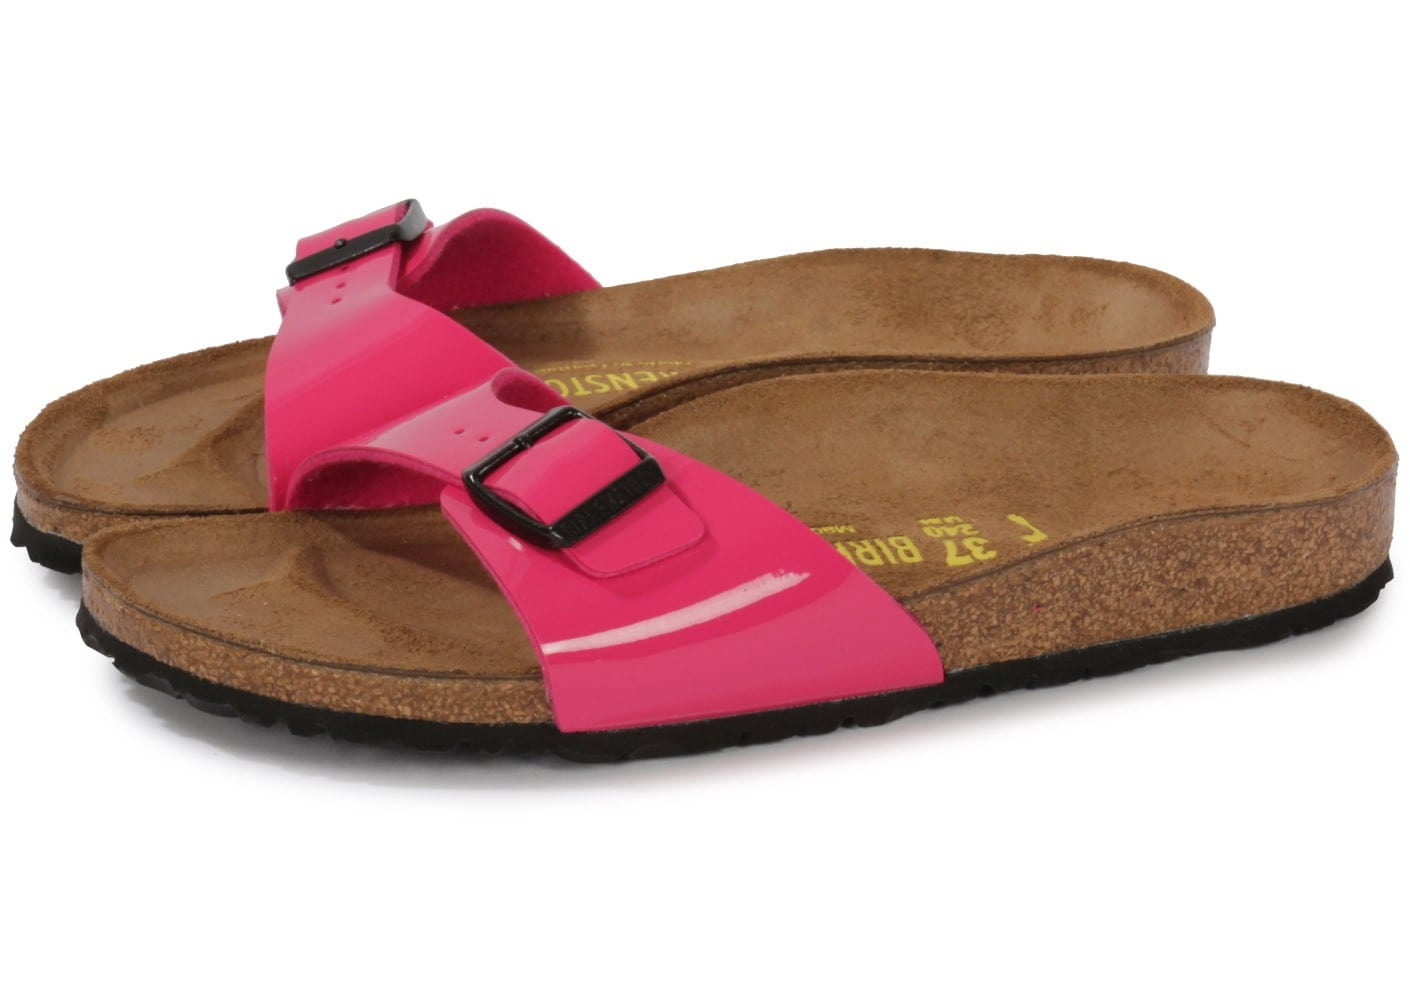 Chaussures - Chaussures Birkenstock y6tpM8v9Xv